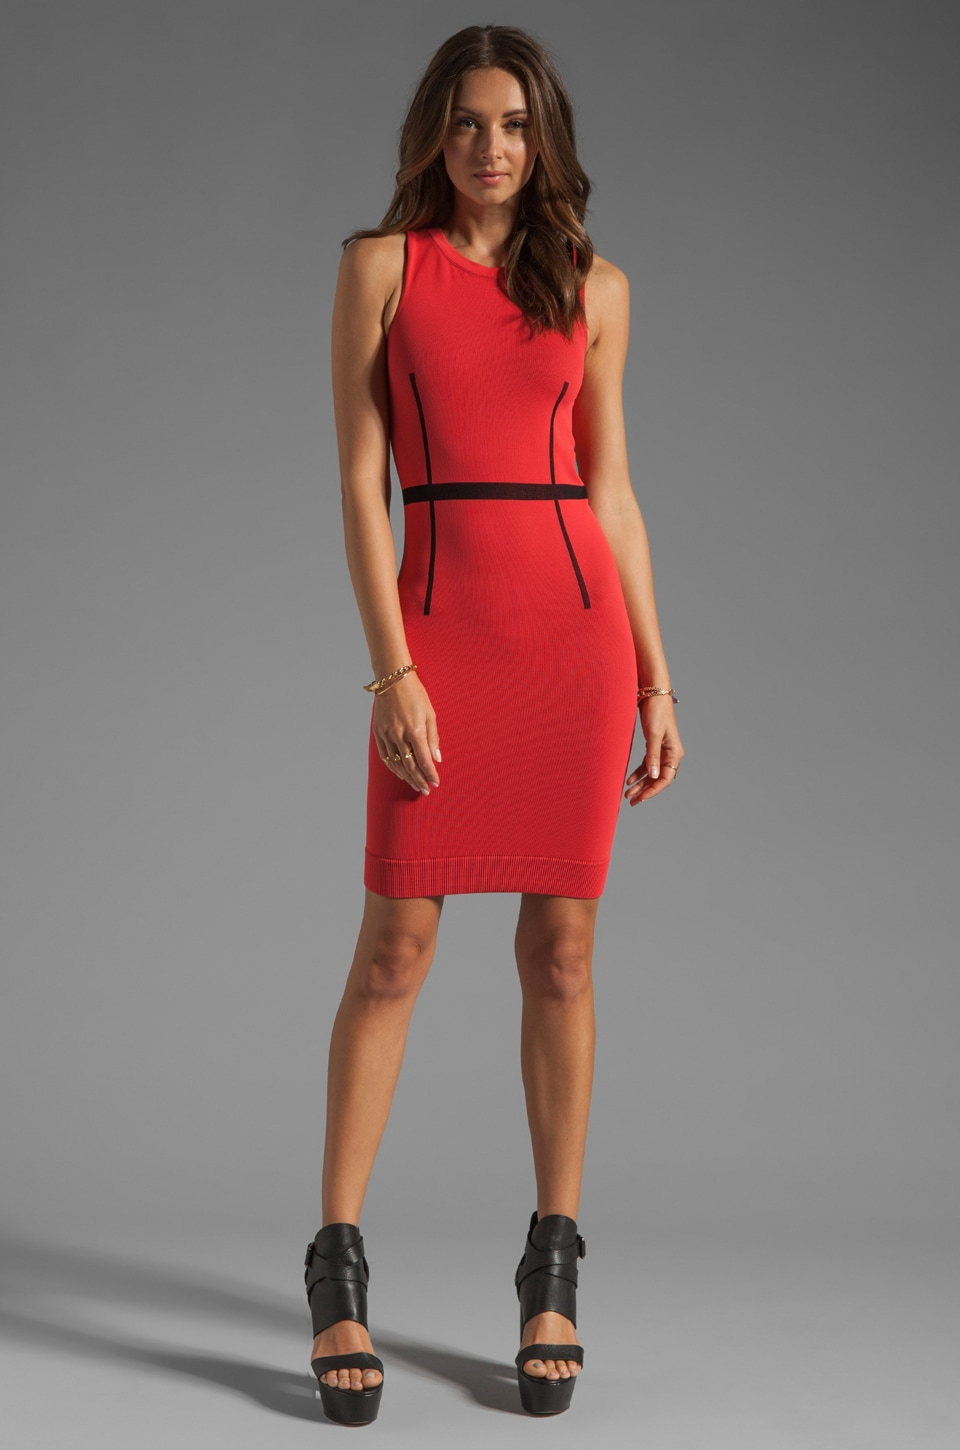 Thatcher Trace Sleeveless Dress in Punch